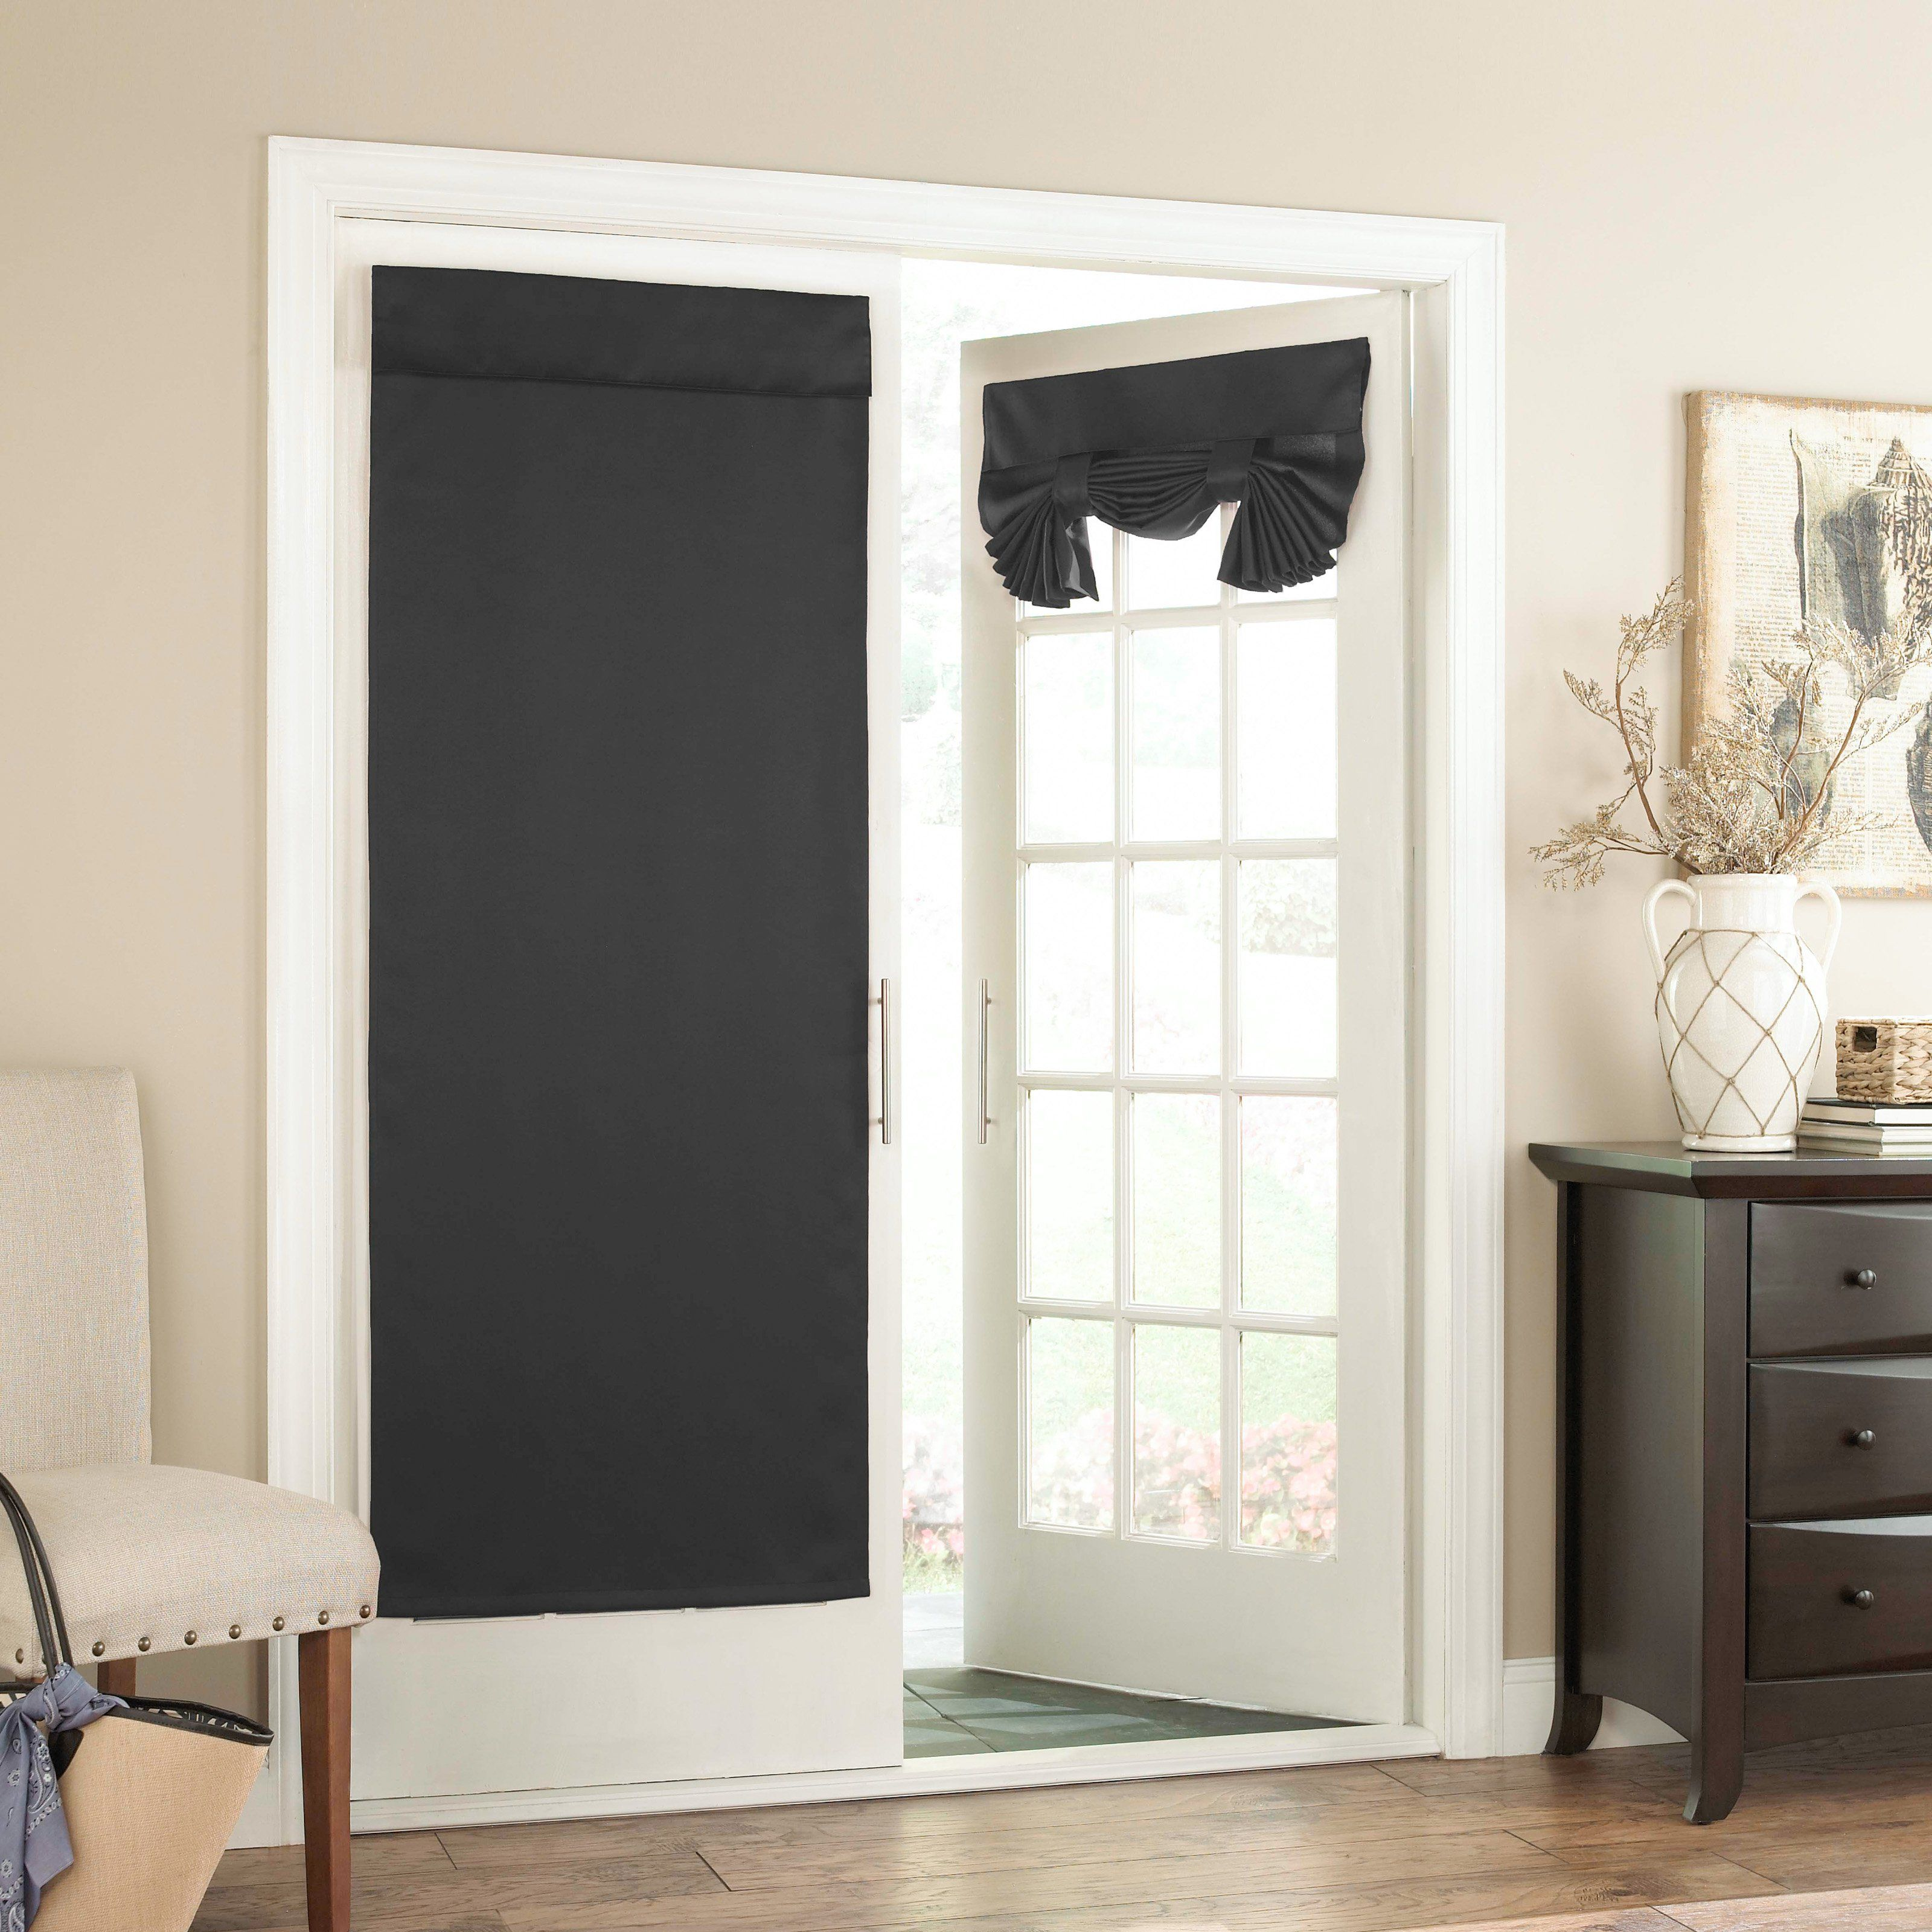 Eclipse tricia window door curtain panel blk products